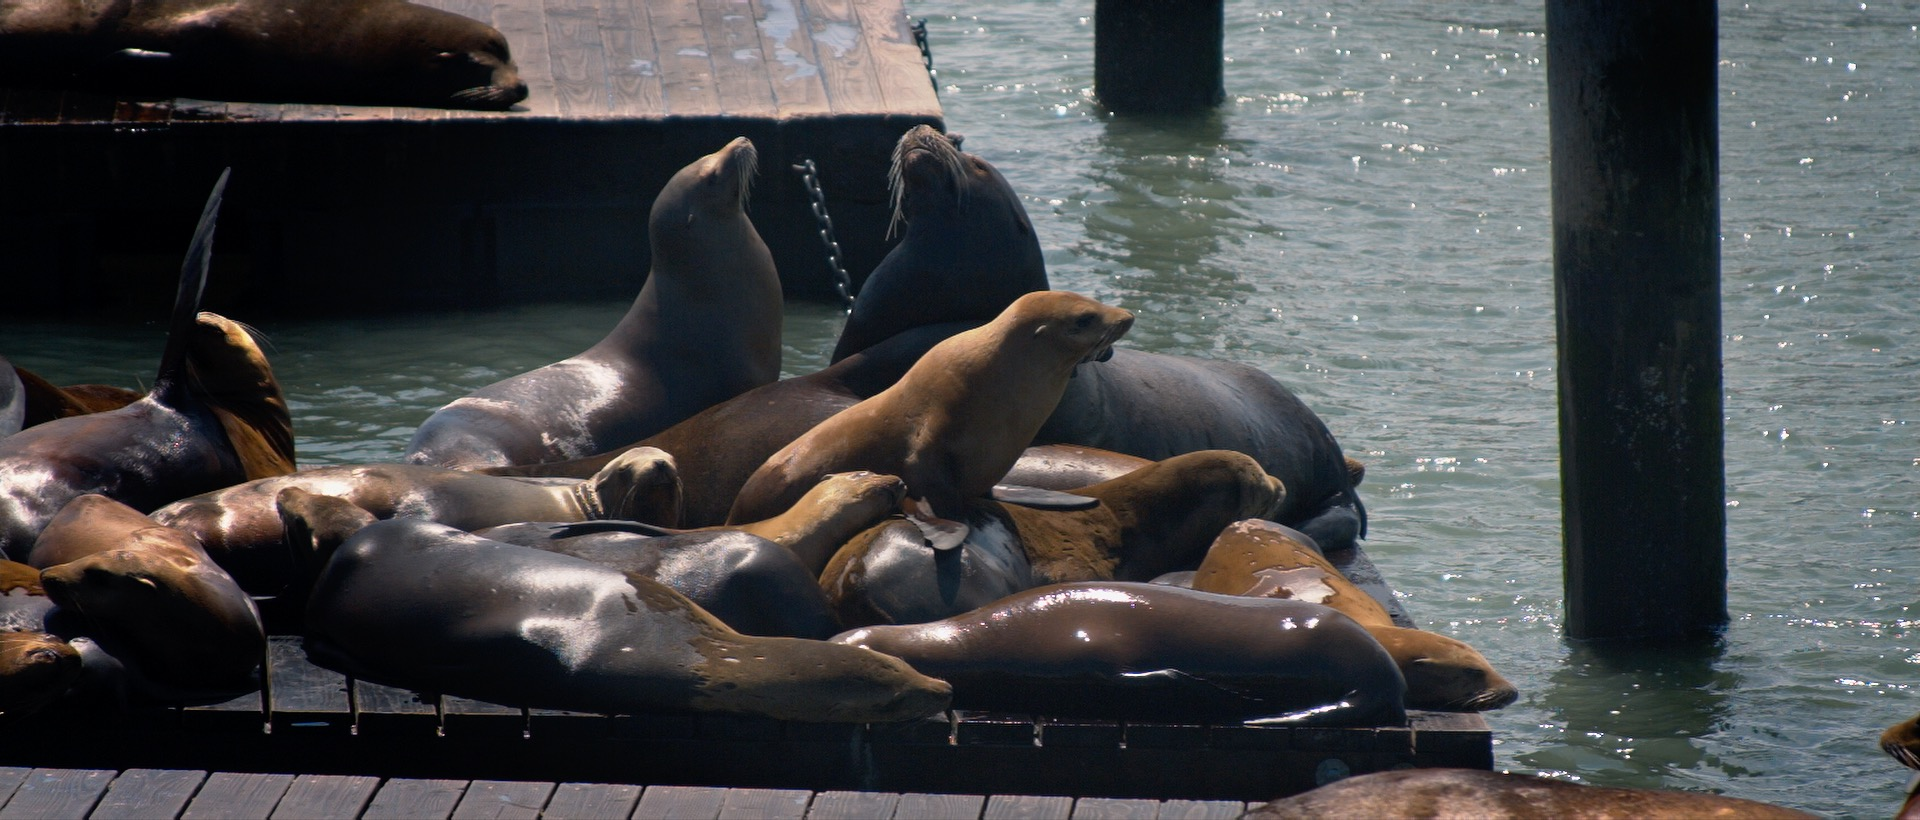 Sea Lions at Fisherman's Warf in SF